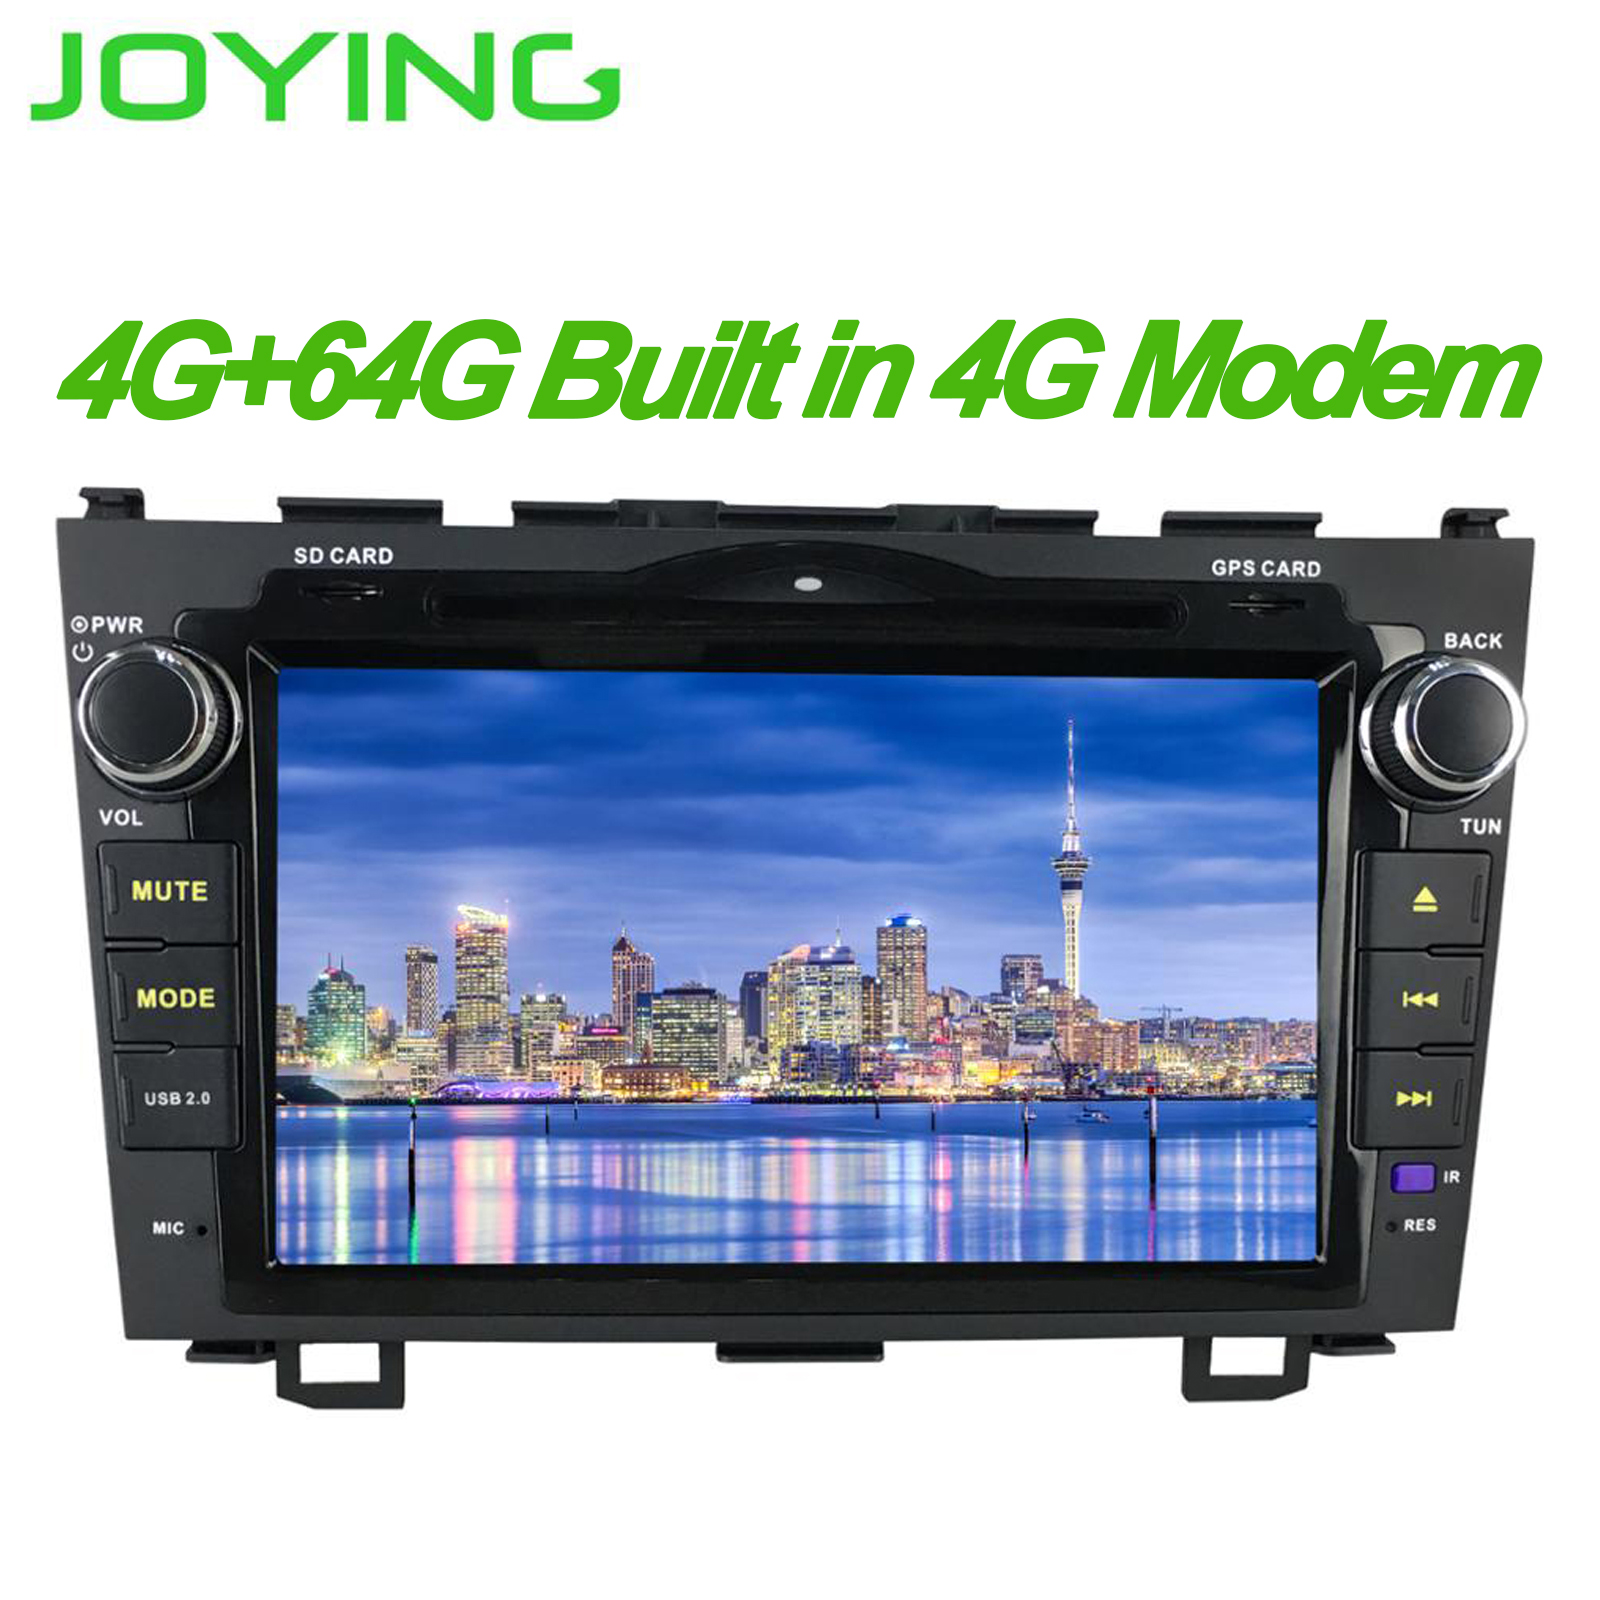 JOYING latest 2din car radio HD 8 inch touchscreen LCD Android 8.1 4gb Ram Octa Core Bluetooth DSP GPS for Honda CRV 2007-2012 image